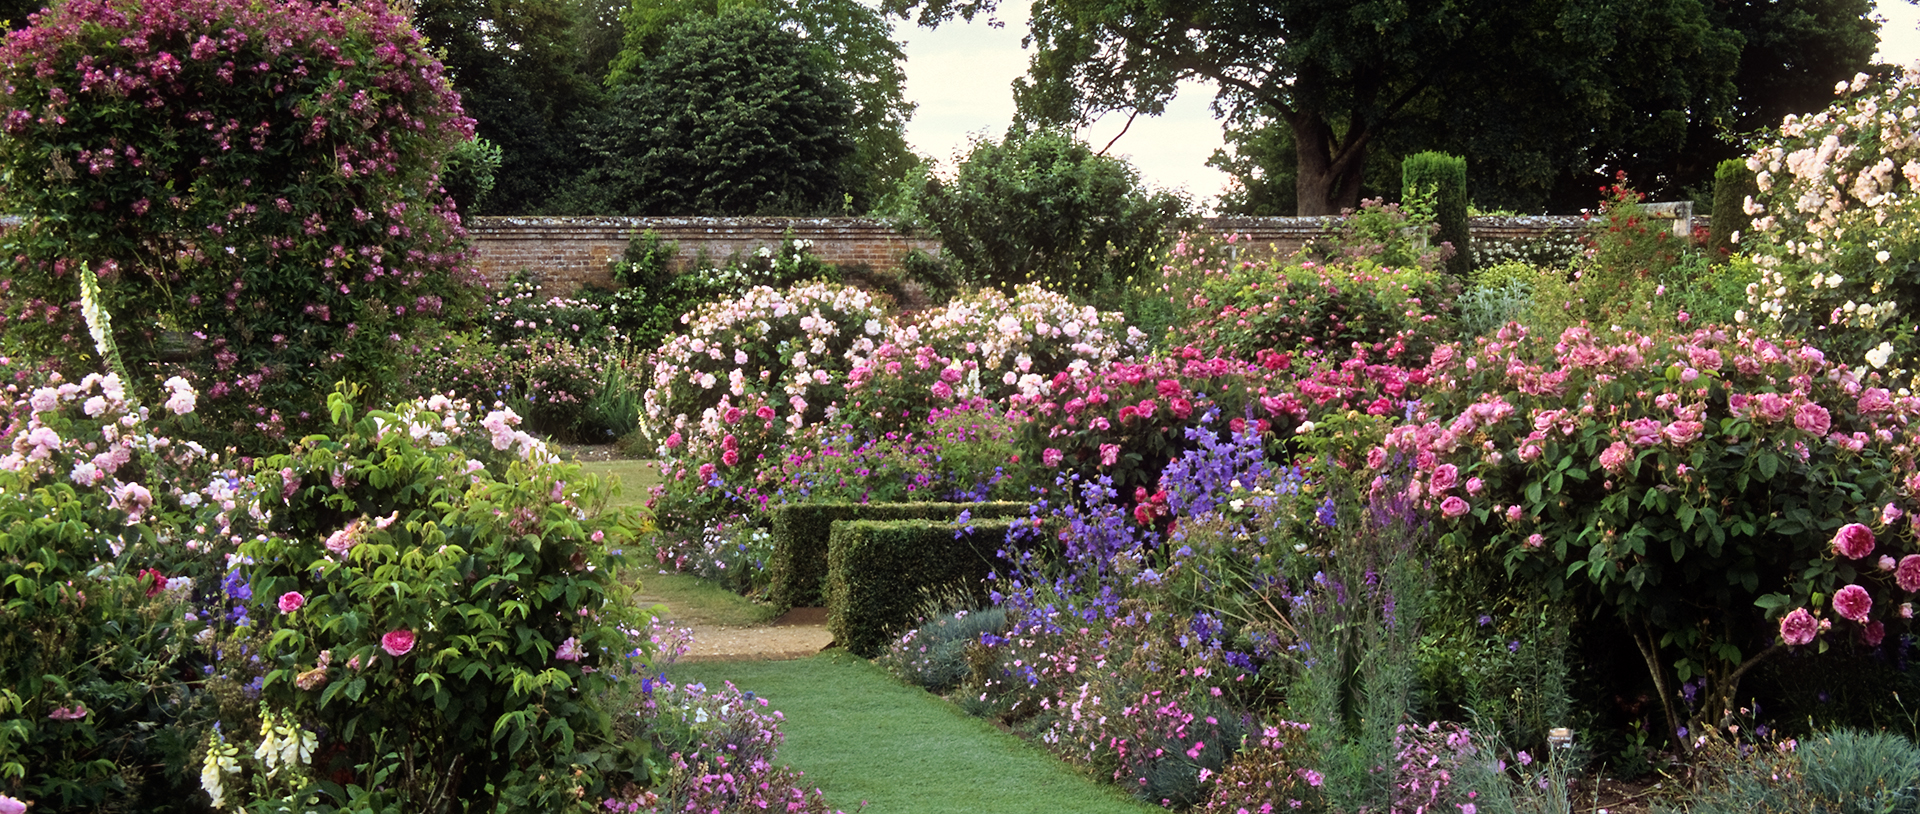 Roses In Garden: Mottisfont Abbey Rose Gardens, Hampshire, UK